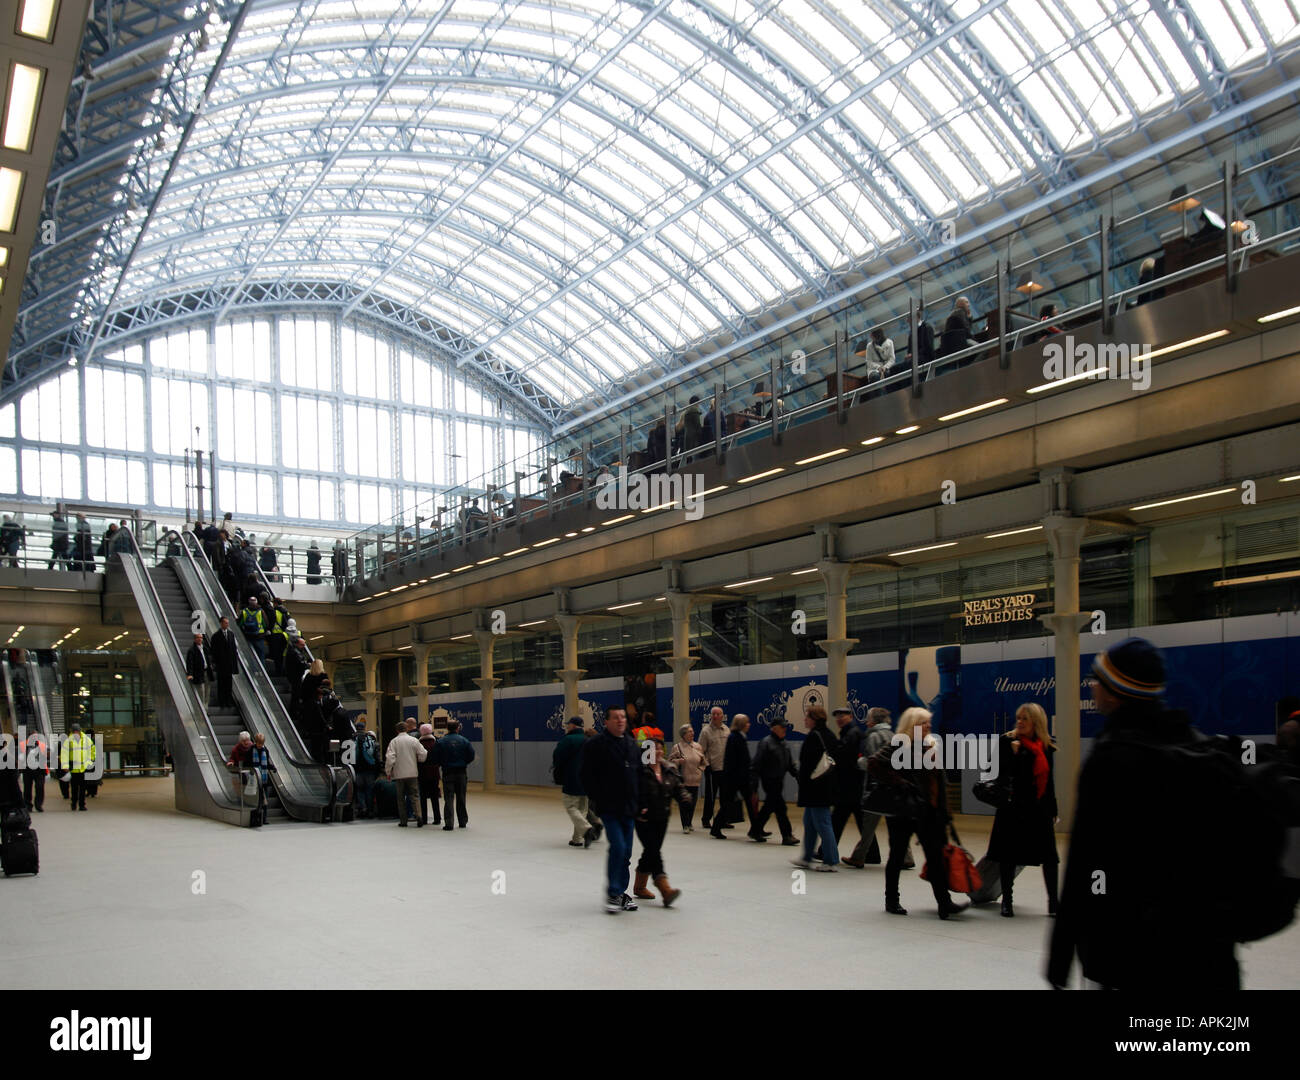 The Large Glass Roof Of St Pancras Station With The